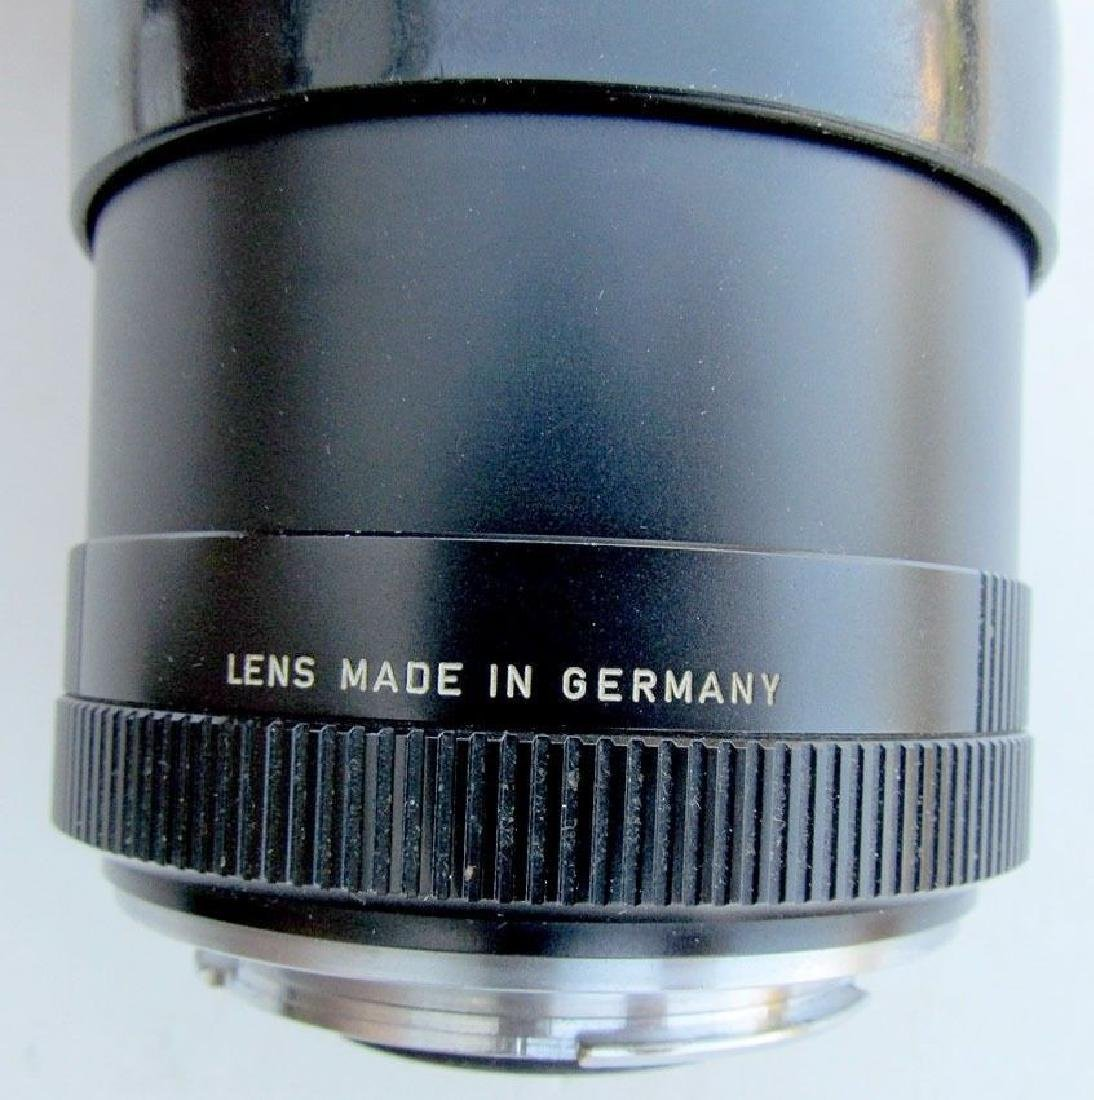 LEICA PHOTO CAMERA LENS LEITZ WETZLAR 2280137 - 6